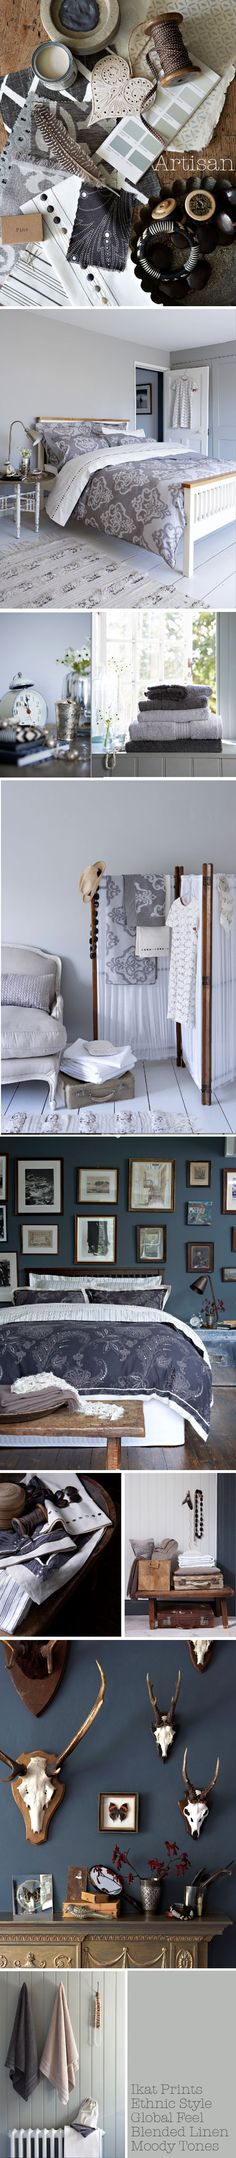 Christy-Artisan | Styling by Marie Nichols Greys whites navy nudes and natural materials, antlers